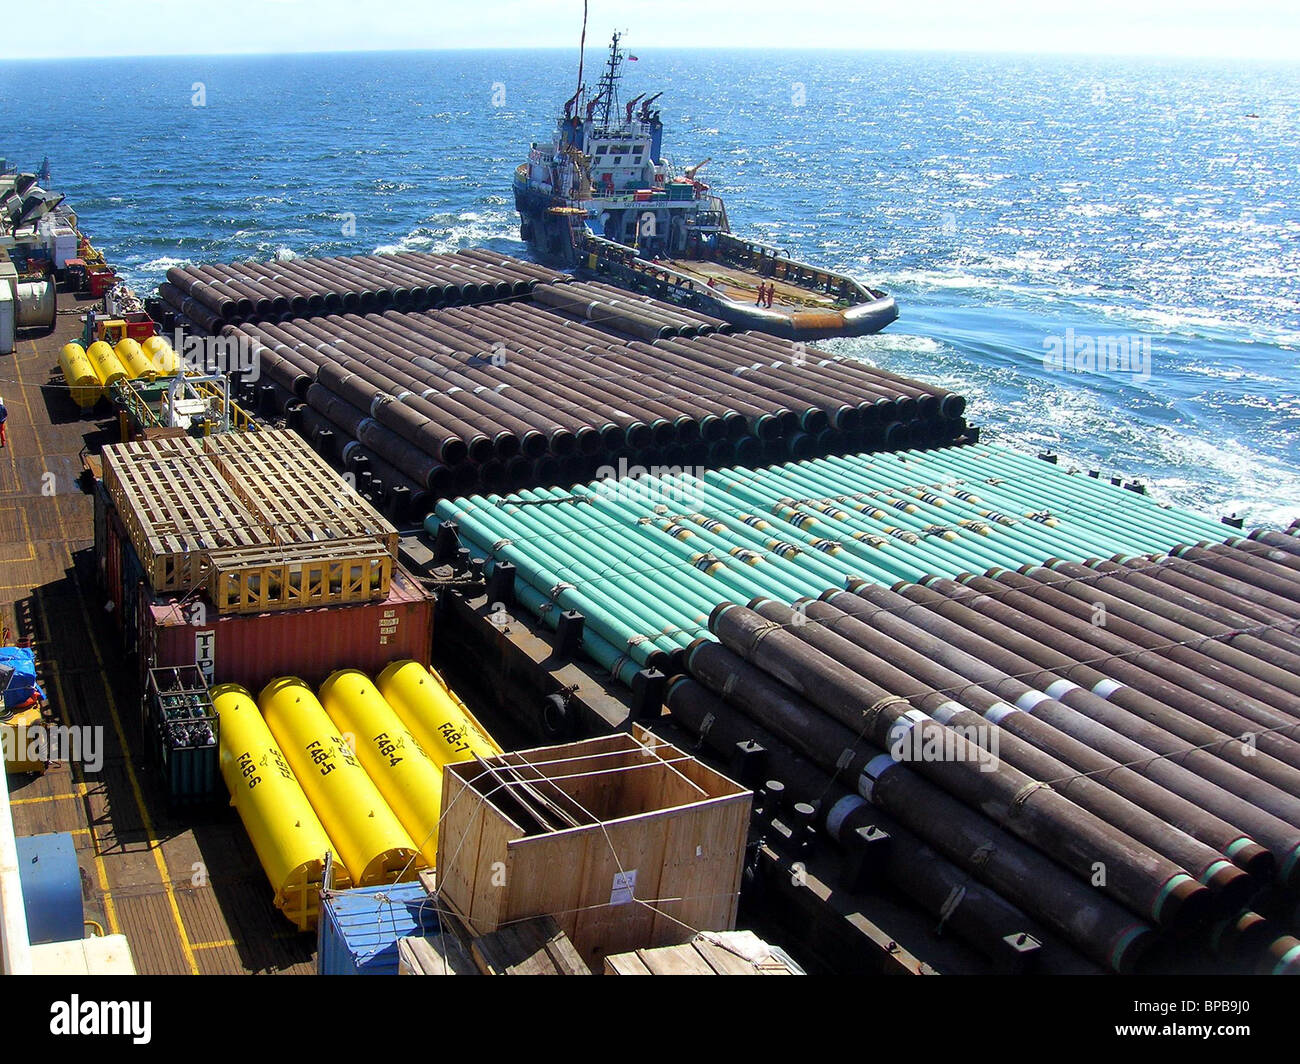 Cargo for їSakhalin-1о project delivered by sea - Stock Image